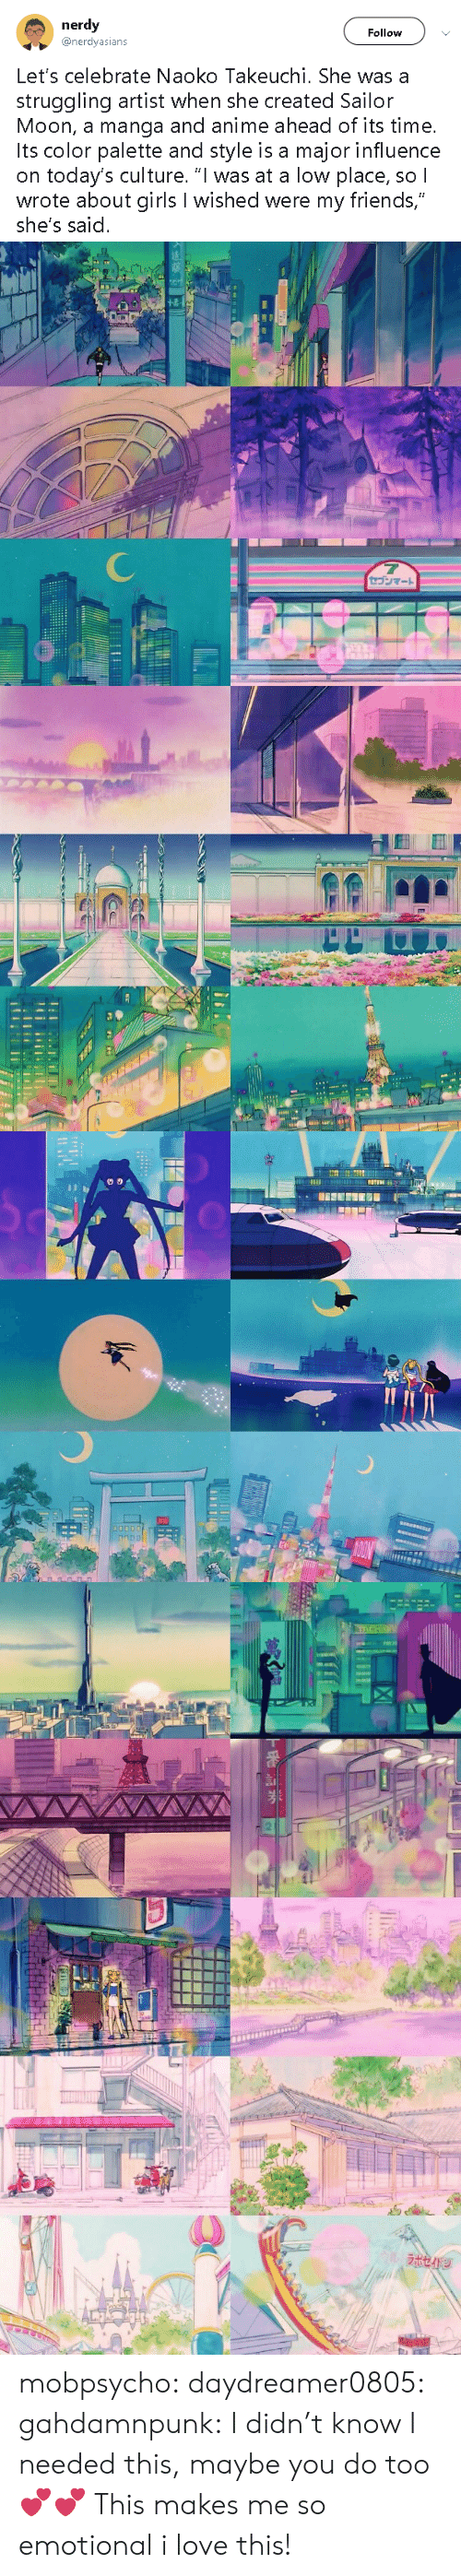 "palette: nerdy  @nerdyasians  Follow  Let's celebrate Naoko Takeuchi. She was a  struggling artist when she created Sailor  Moon, a manga and anime ahead of its time.  Its color palette and style is a major influence  on today's culture. ""I was at a low place, so l  wrote about girls I wished were my friends,""  she's said.   7  セゴンマート   סוו   NON  Ln   TACHIOA  ラホセイドジ mobpsycho:  daydreamer0805: gahdamnpunk: I didn't know I needed this, maybe you do too 💕💕  This makes me so emotional   i love this!"